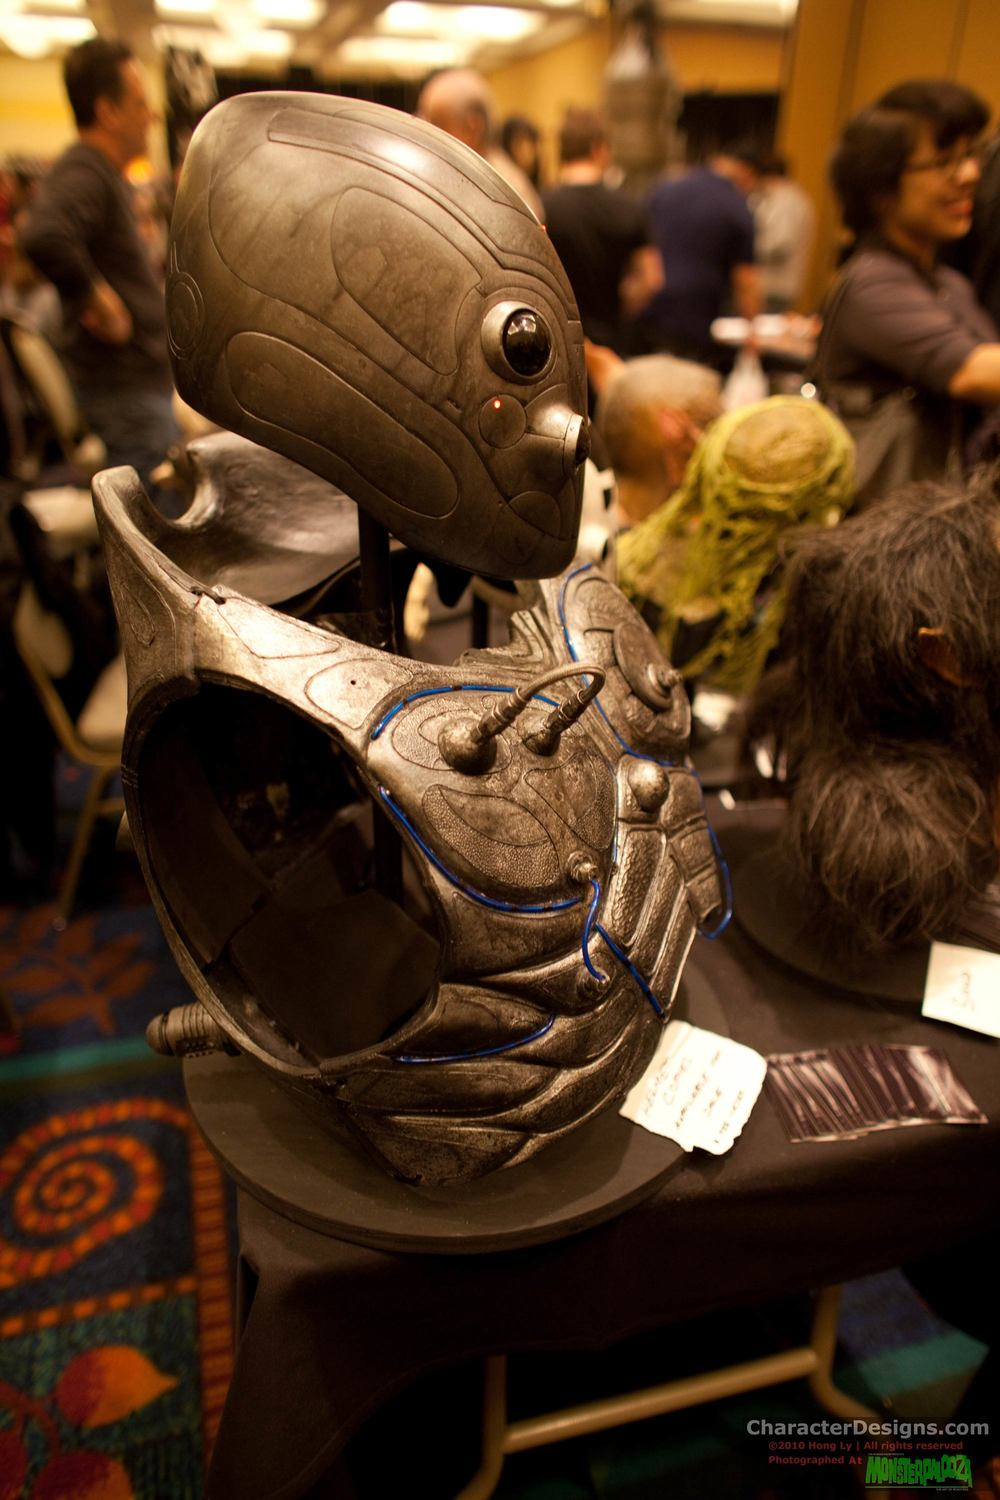 2010_Monsterpalooza_095.jpg